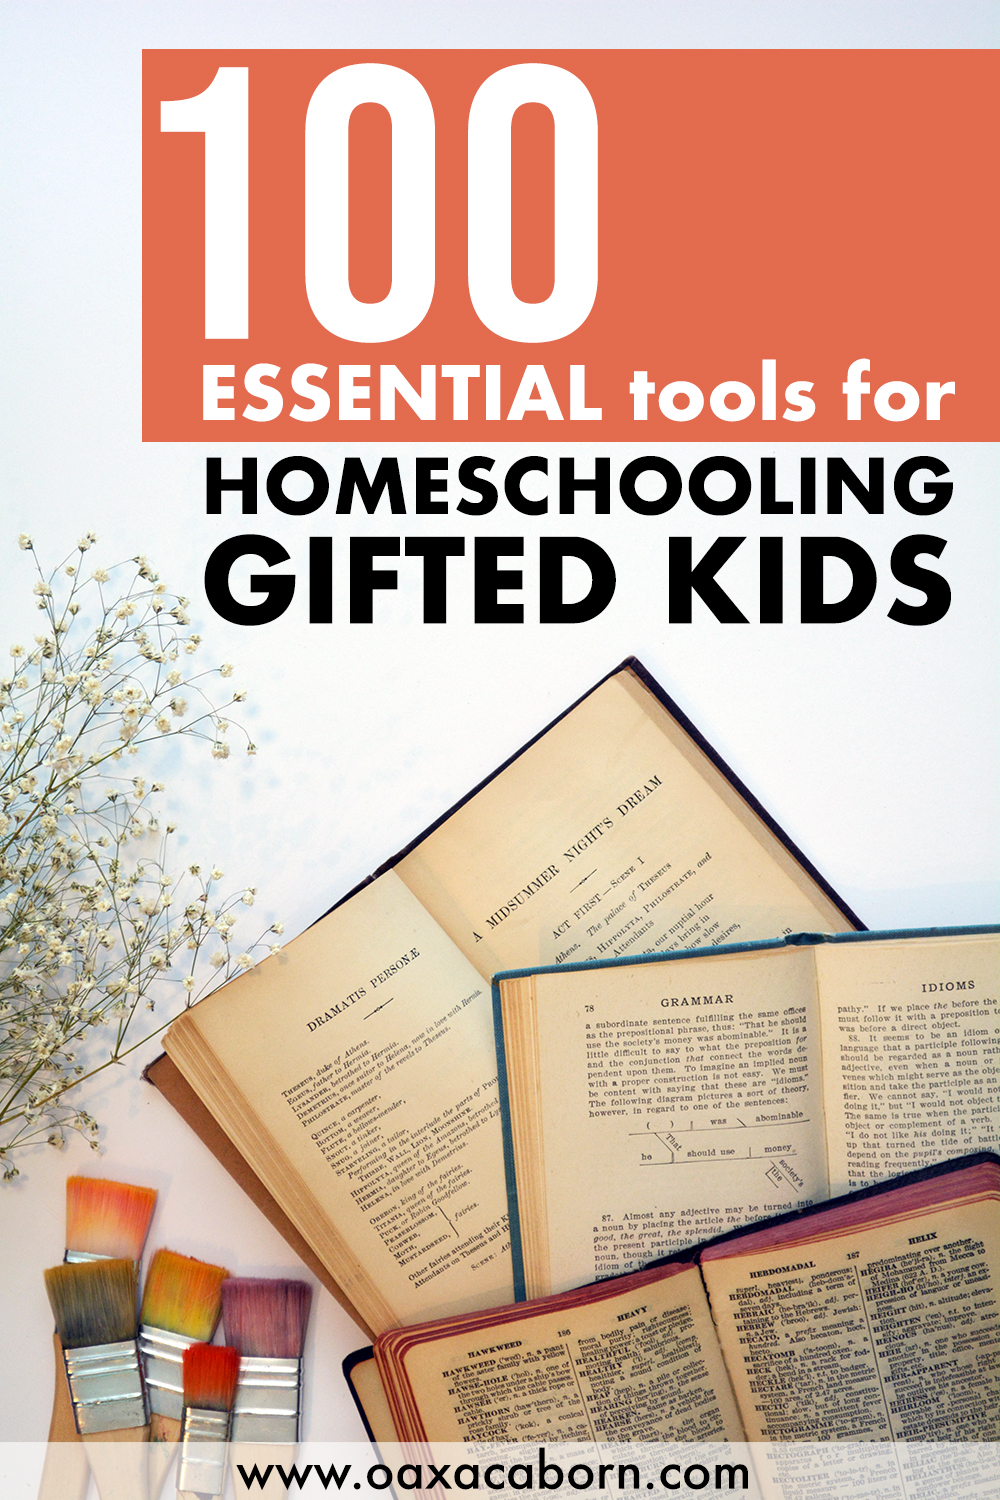 100 Essential Tools for Homeschooling Gifted Kids - by Gina of the Oaxacaborn Blog